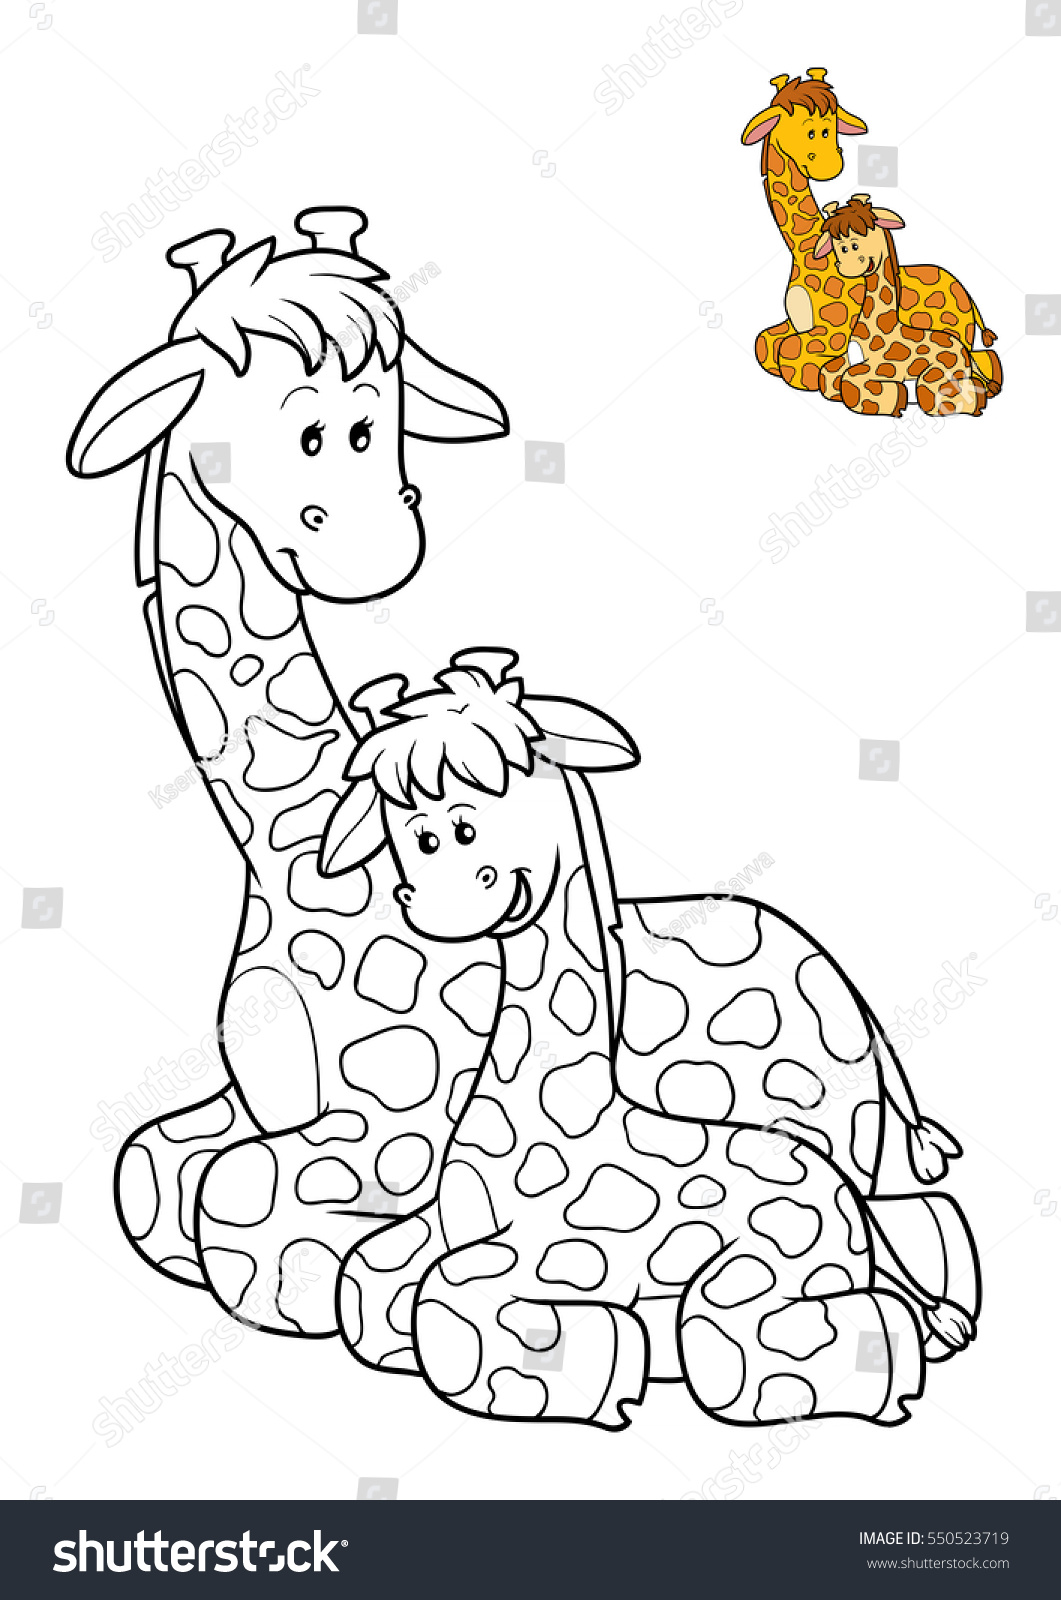 Coloring Book Children Giraffes Family Stock Illustration